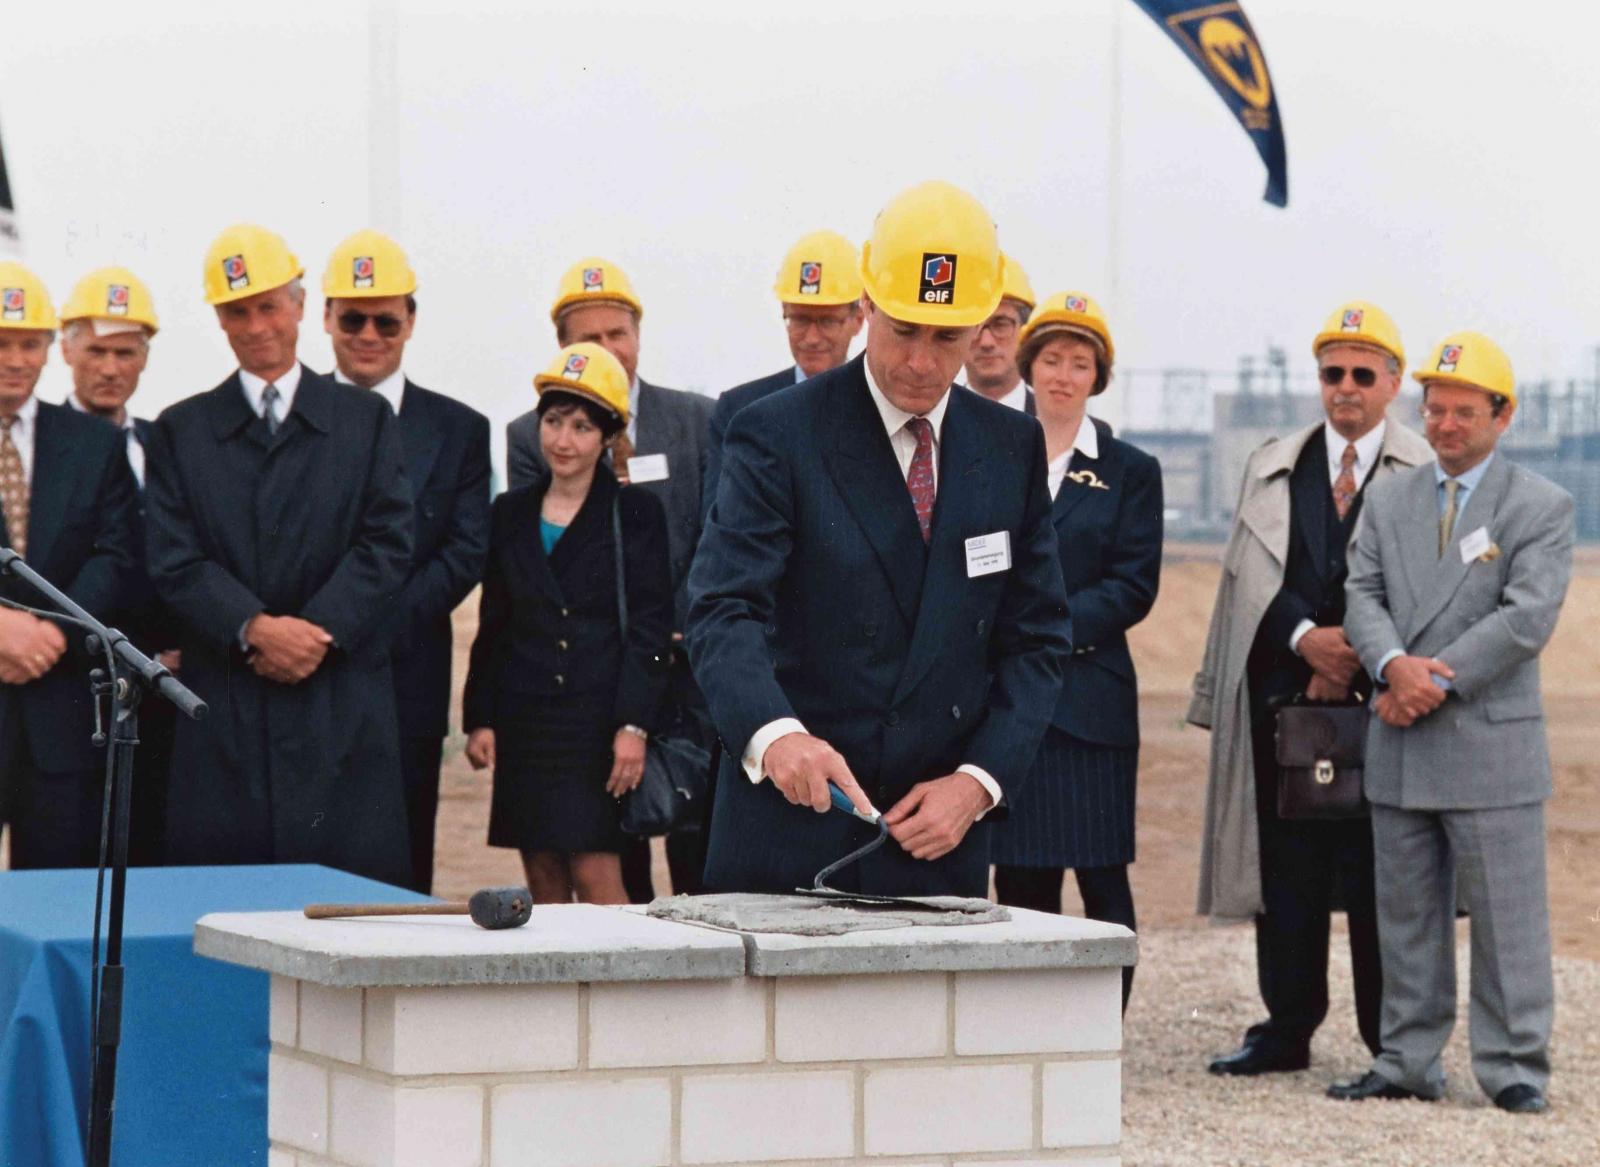 Foundation stone ceremony of Leuna refinery